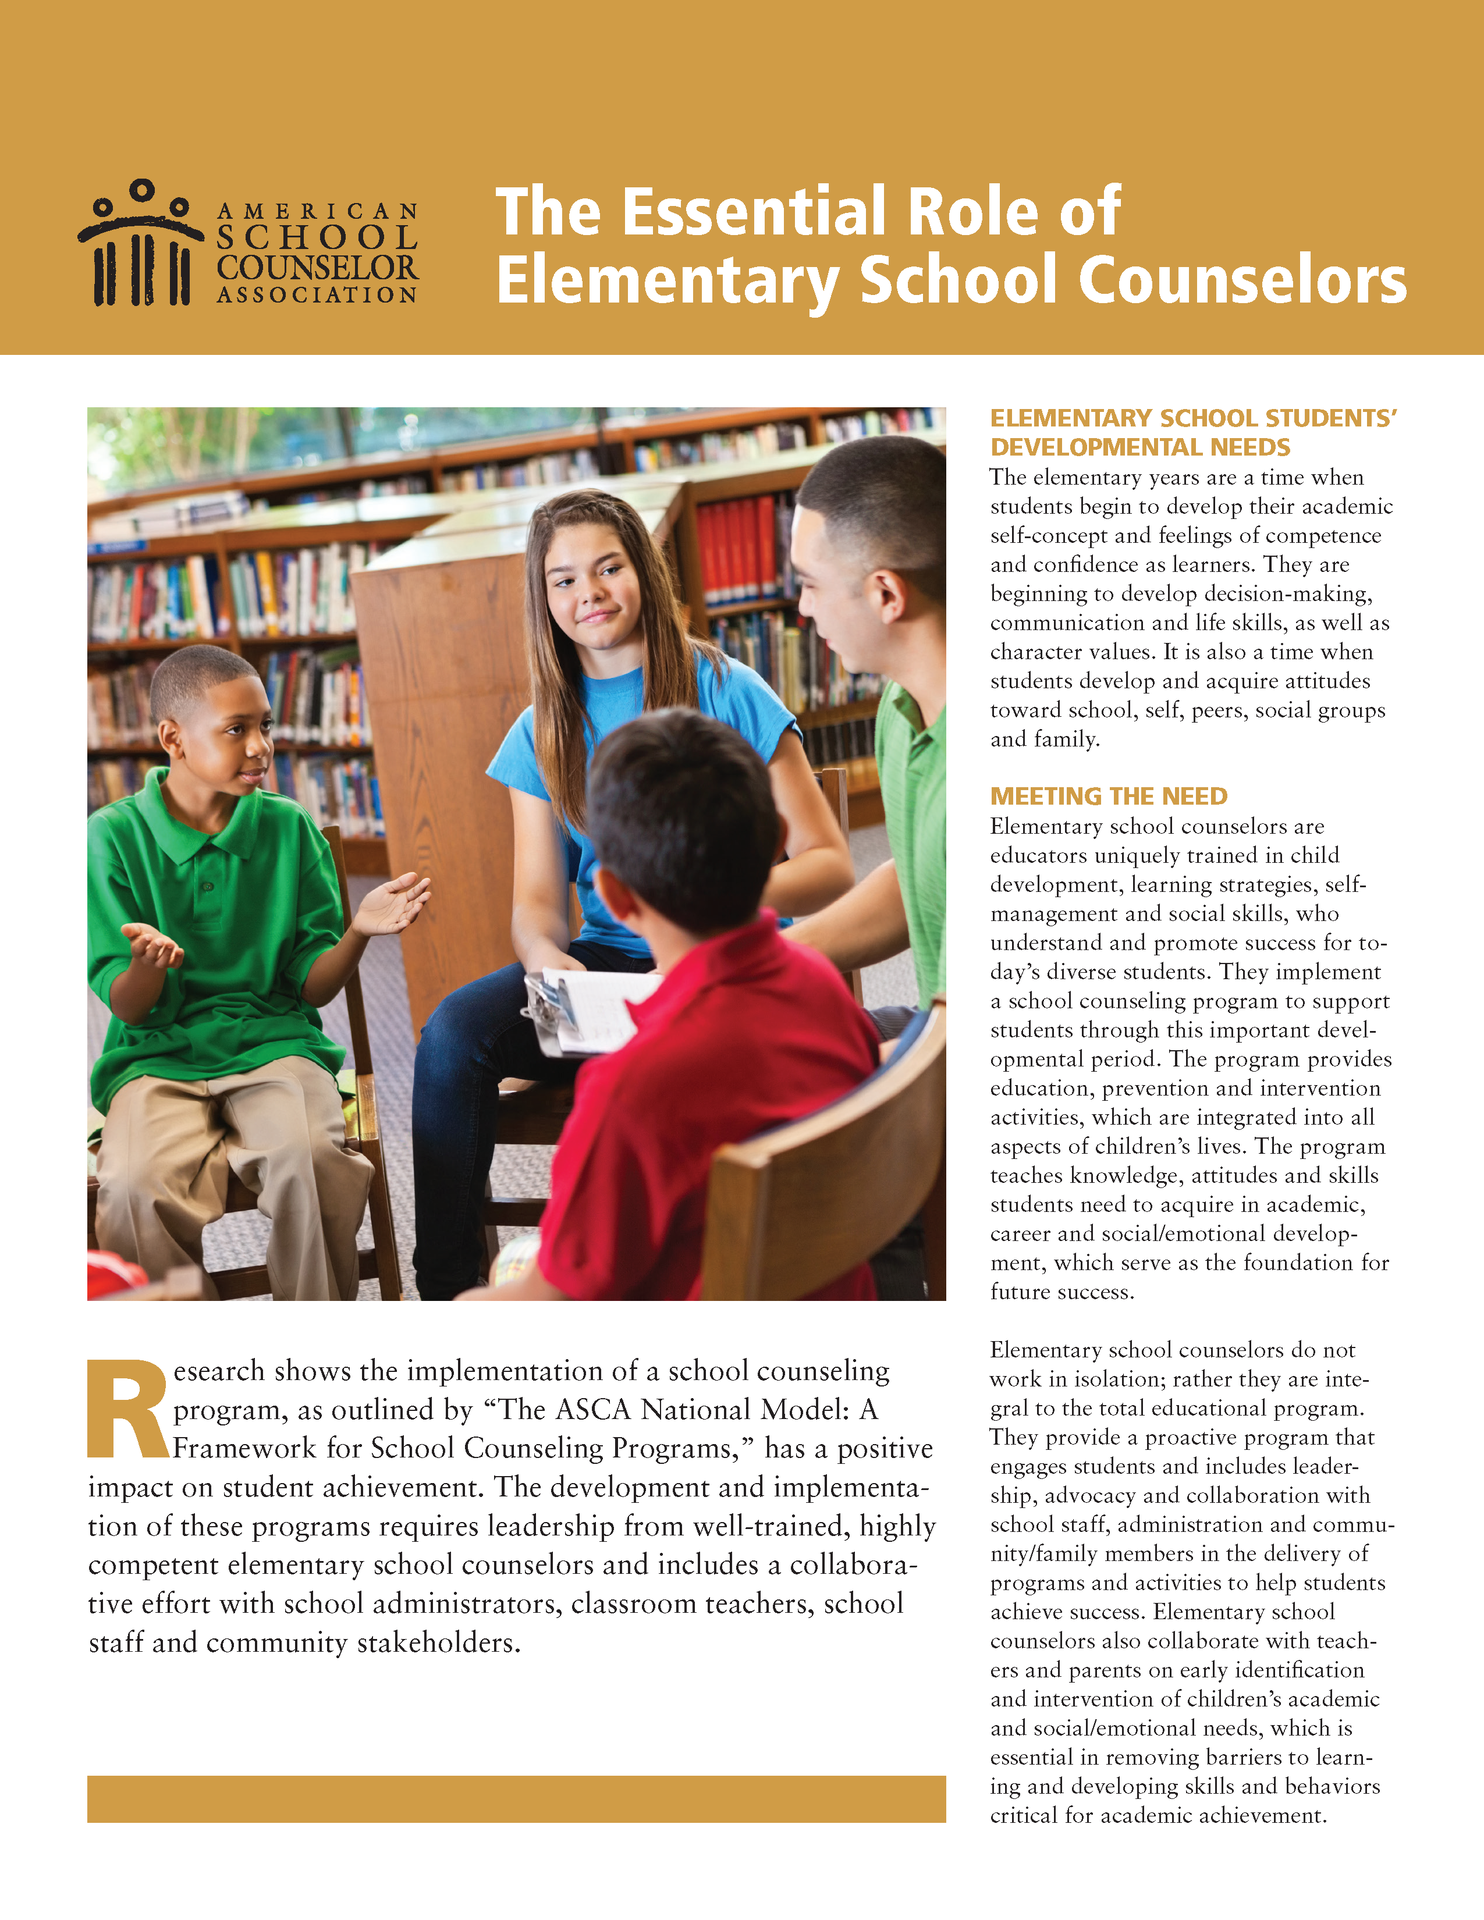 graphic explaining the role of elementary school counselors